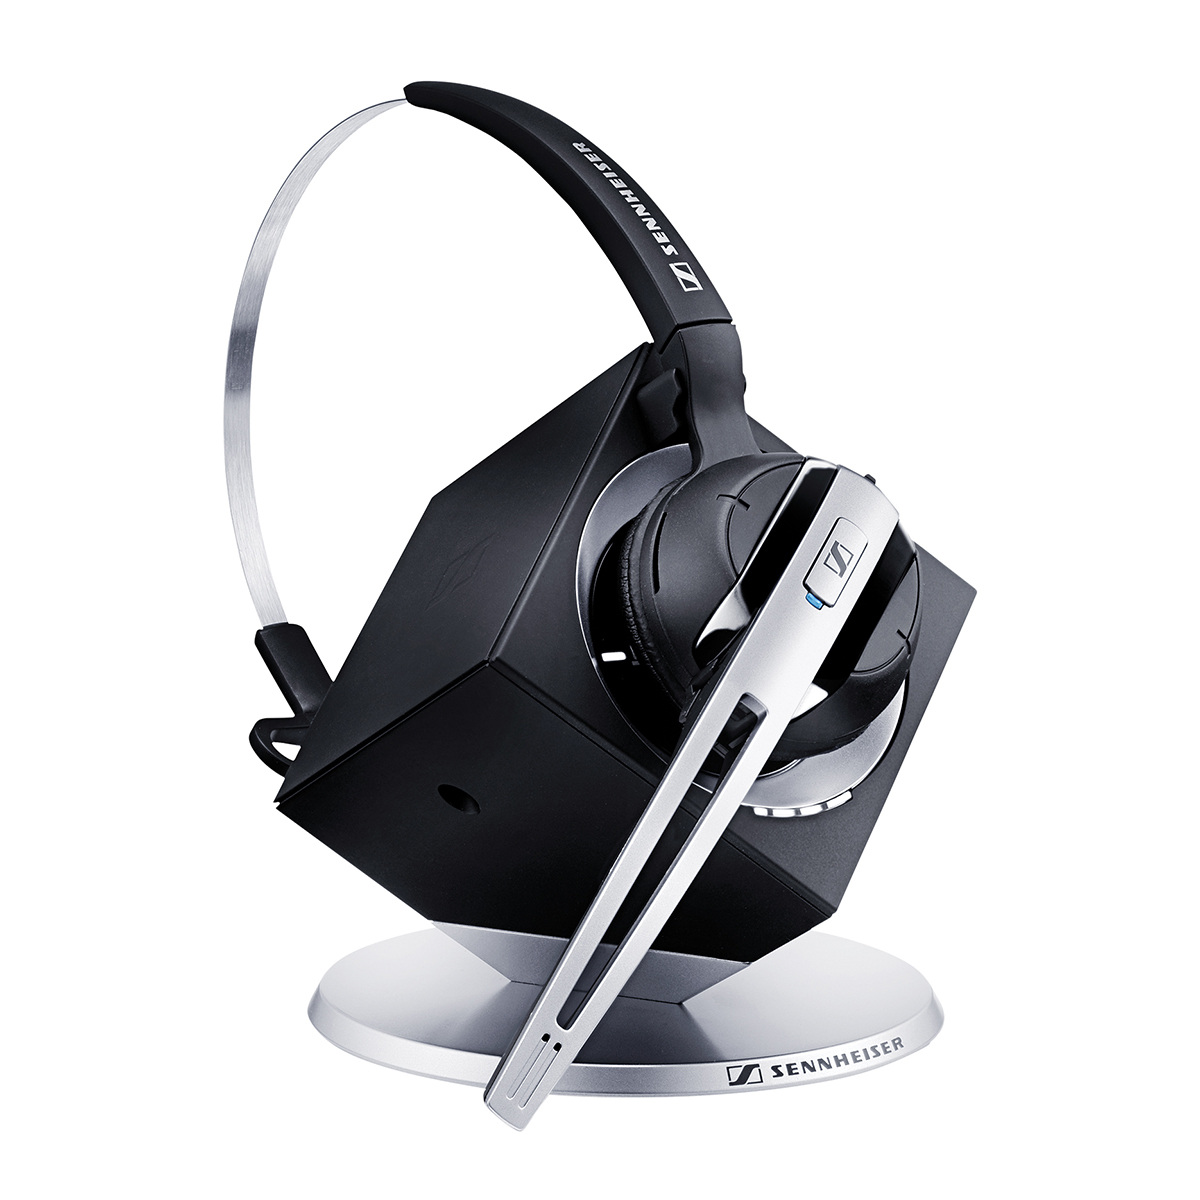 EPOS Sennheiser DW-10 USB ML Single Connectivity DECT Mono Headset